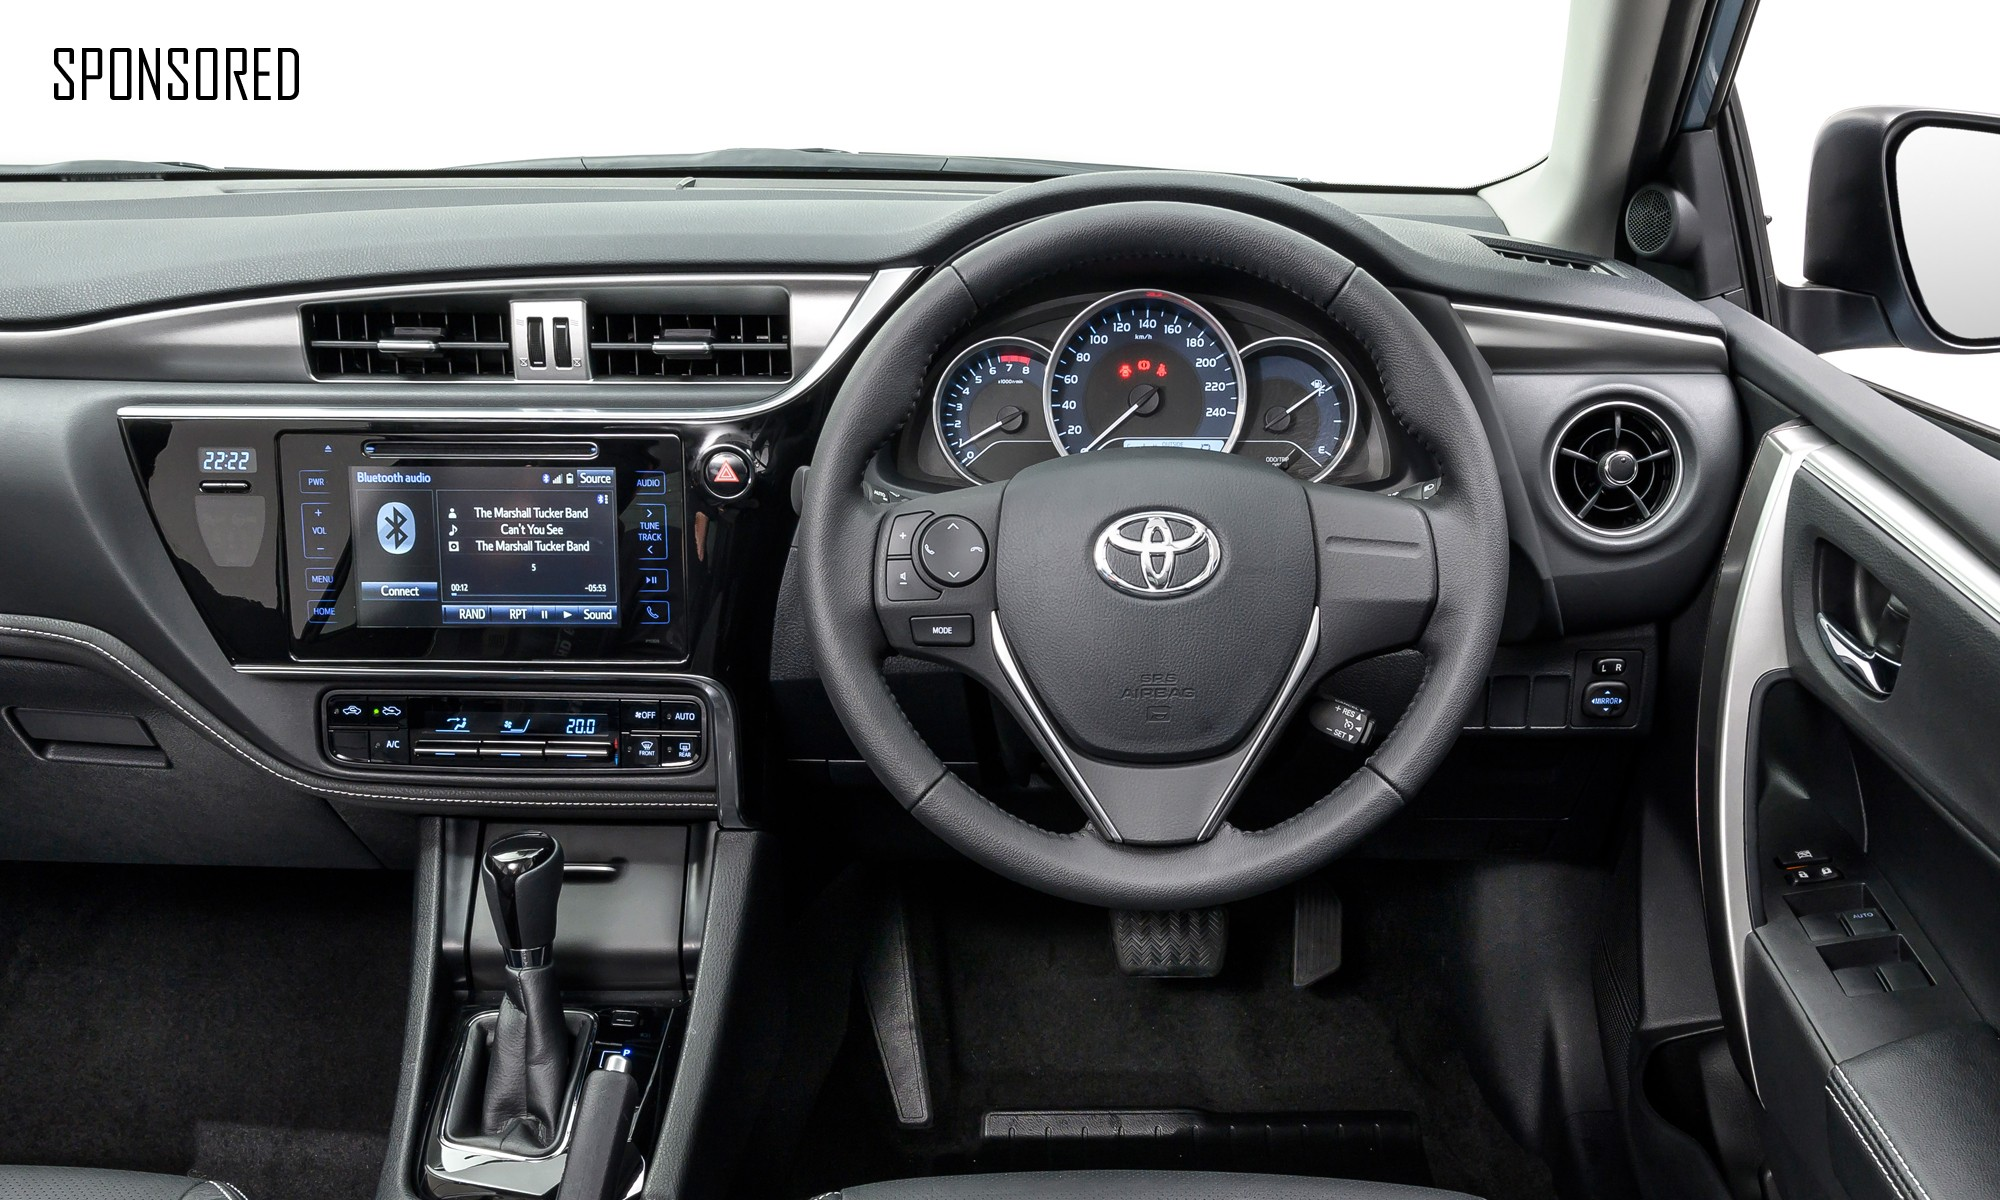 Toyota Corolla Quest interior sponsored